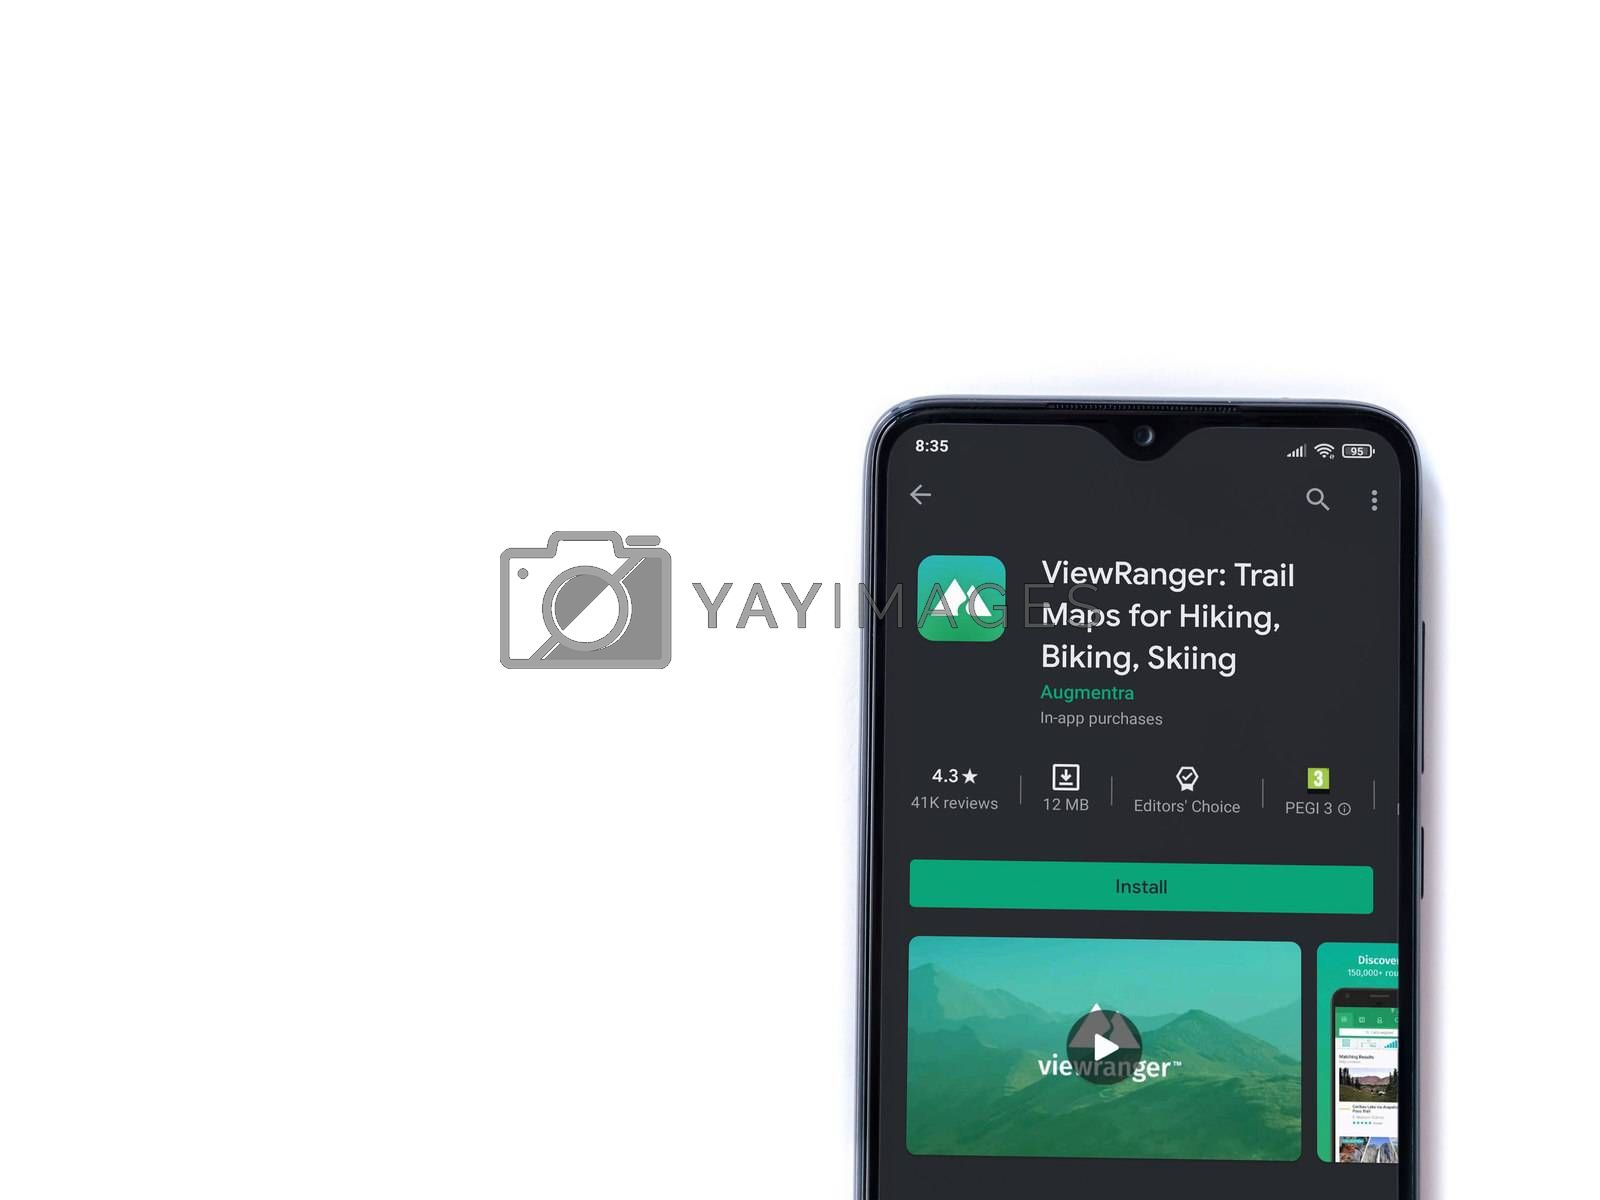 Lod, Israel - July 8, 2020: ViewRanger app play store page on the display of a black mobile smartphone isolated on white background. Top view flat lay with copy space.